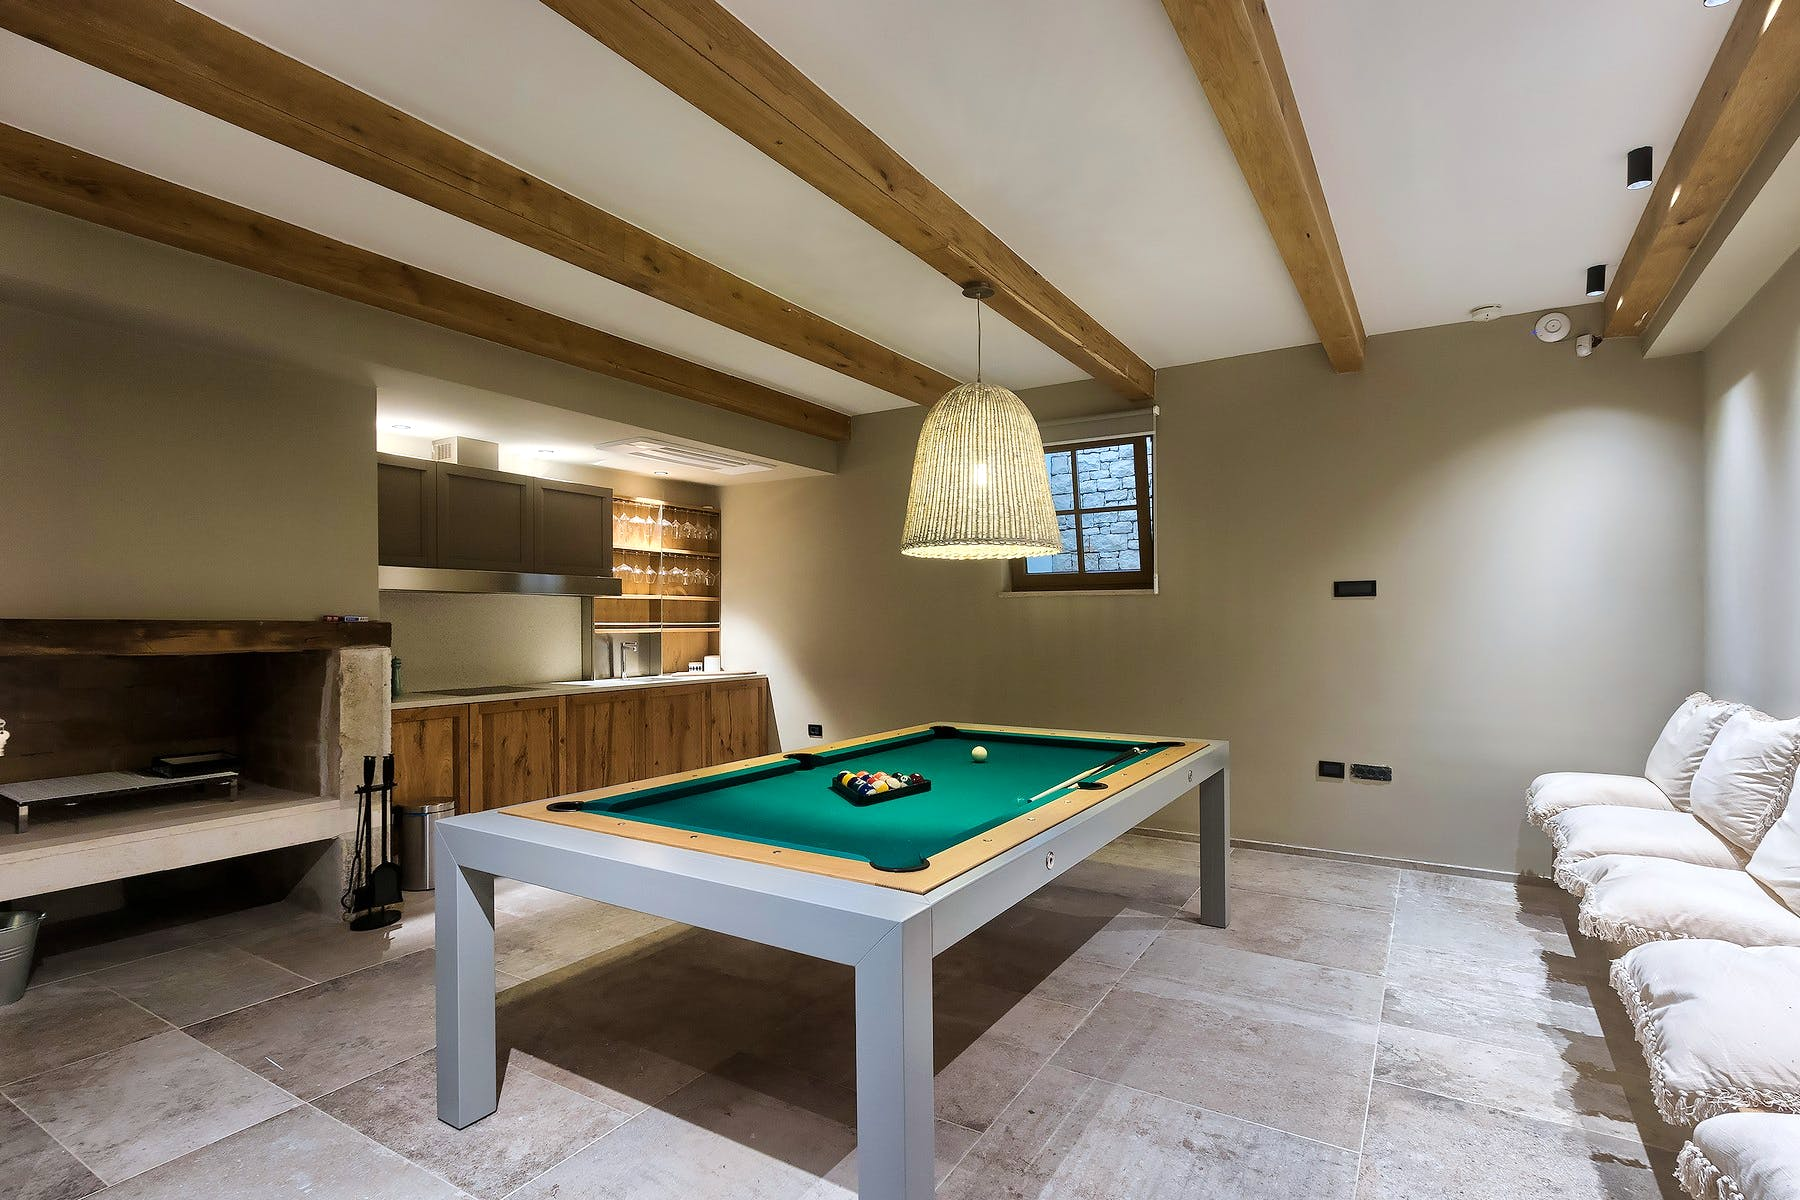 Pool tabble in the game room